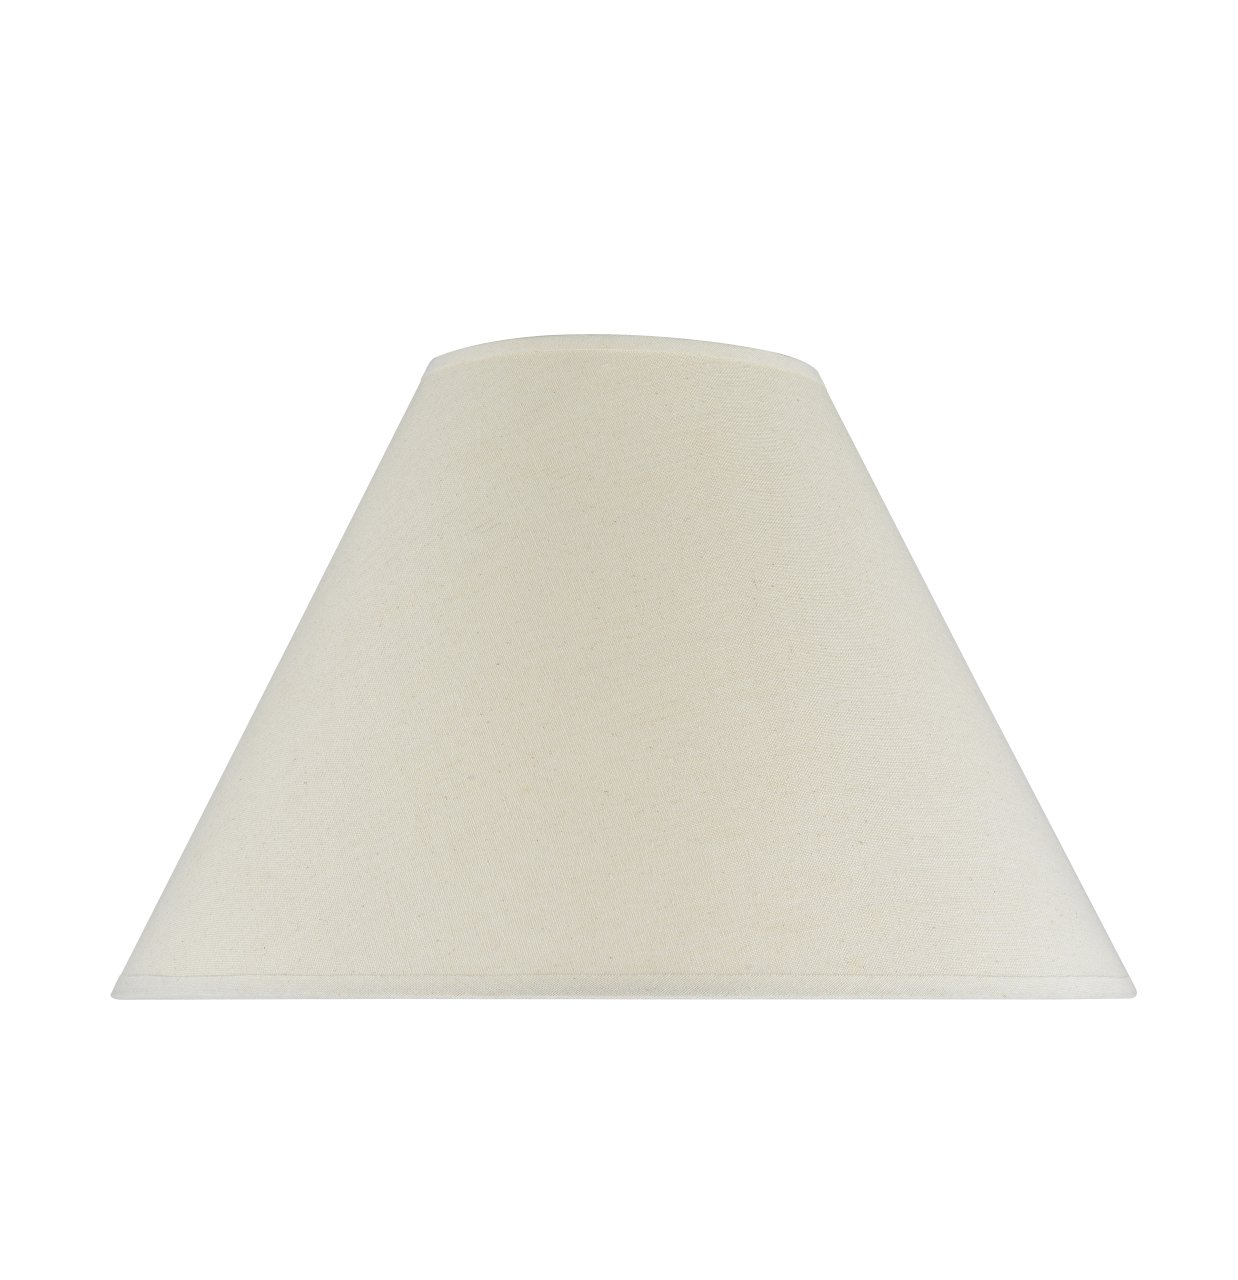 """Aspen Creative 32023 Transitional Hardback Empire Shape Spider Construction Lamp Shade in Off White, 18"""" wide (7"""" x 18"""" x 12 1/2"""")"""